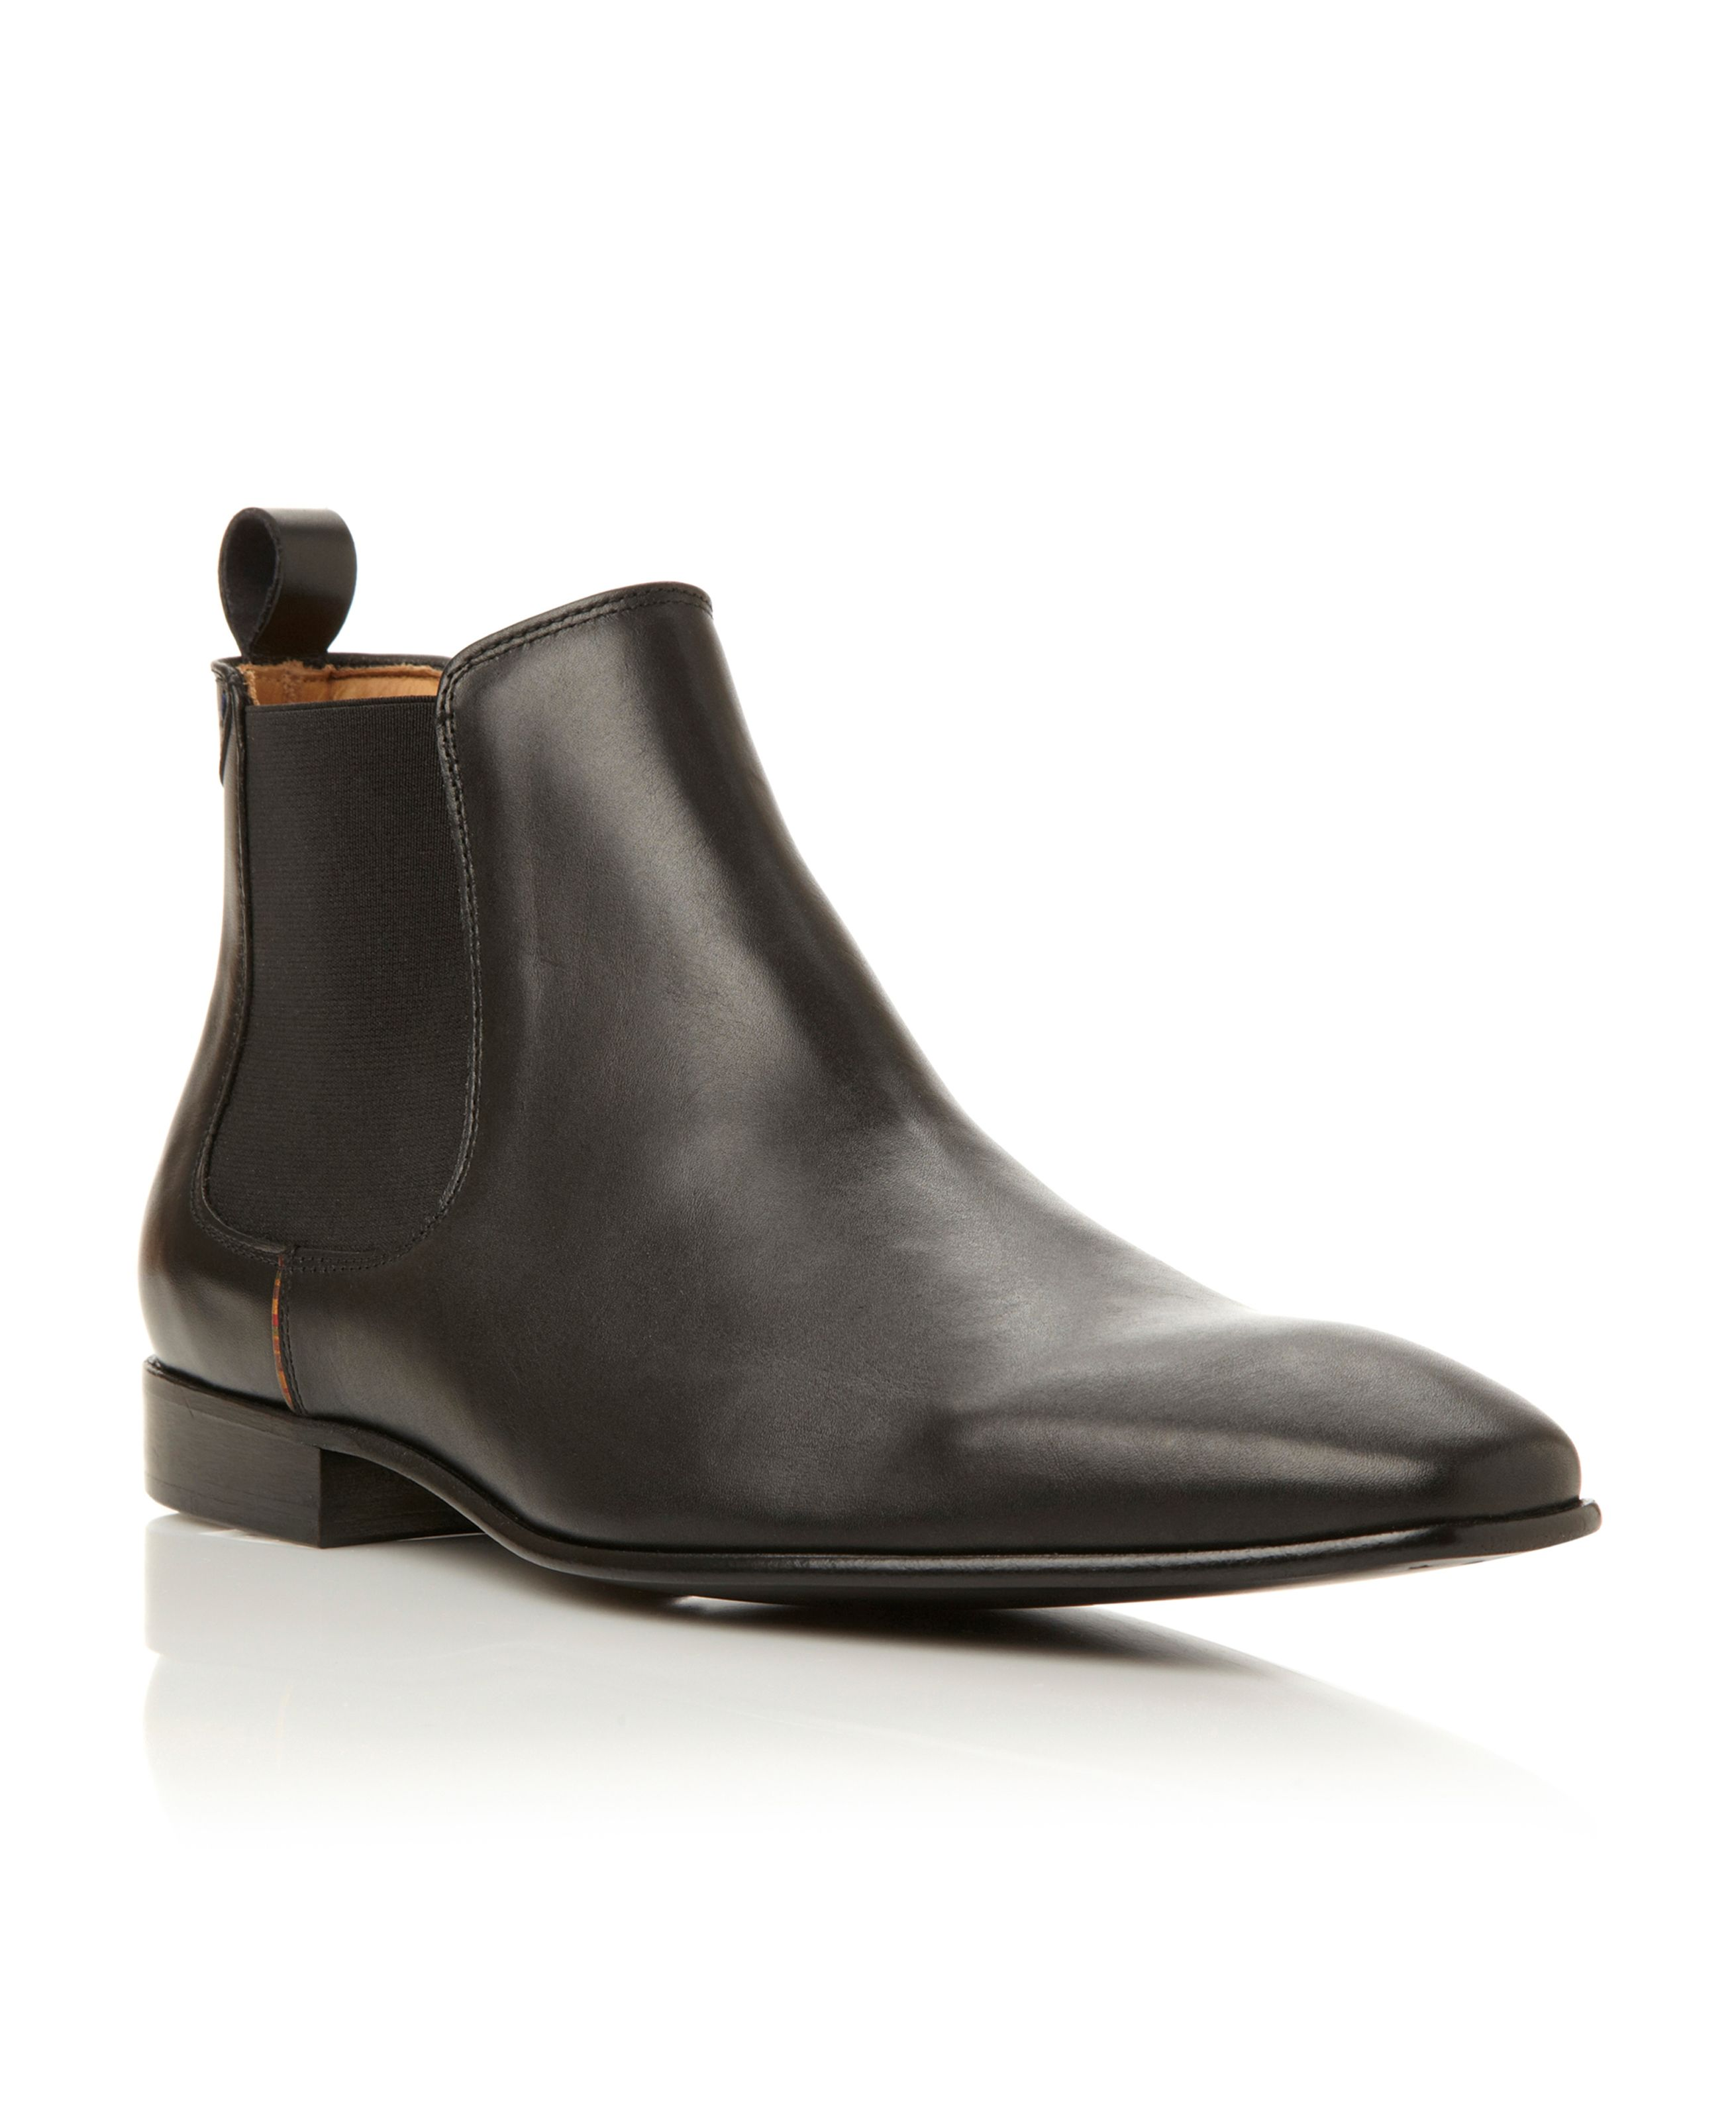 Falconer chelsea boot